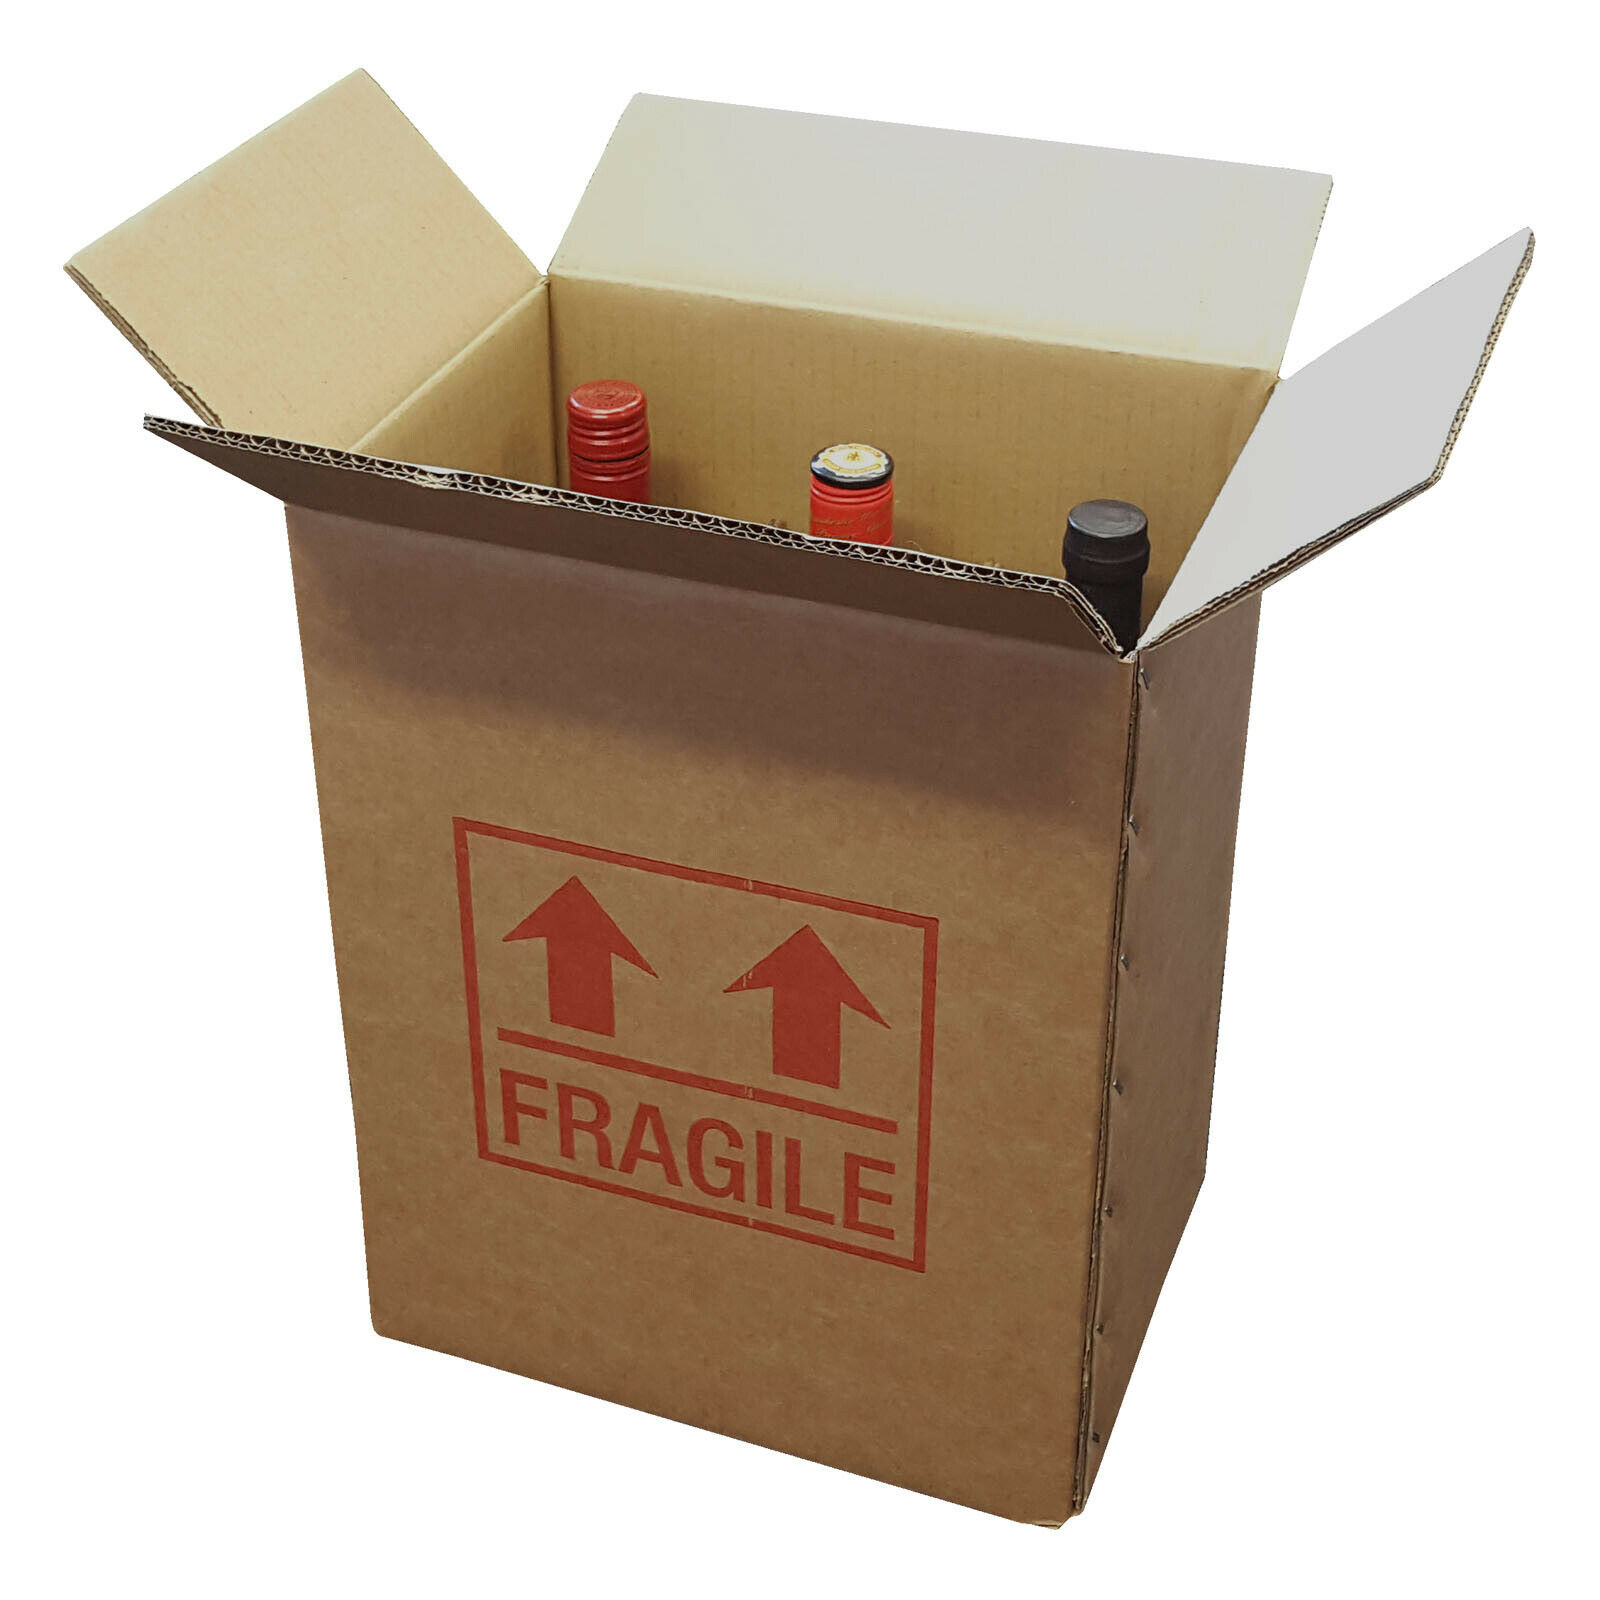 45 Strong Cardboard 6 Bottle Wine Boxes 275mm x 190mm x 335mm Printed Fragile 132993724820 - 45 Strong Cardboard 6 Bottle Wine Boxes 275mm x 190mm x 335mm Printed Fragile